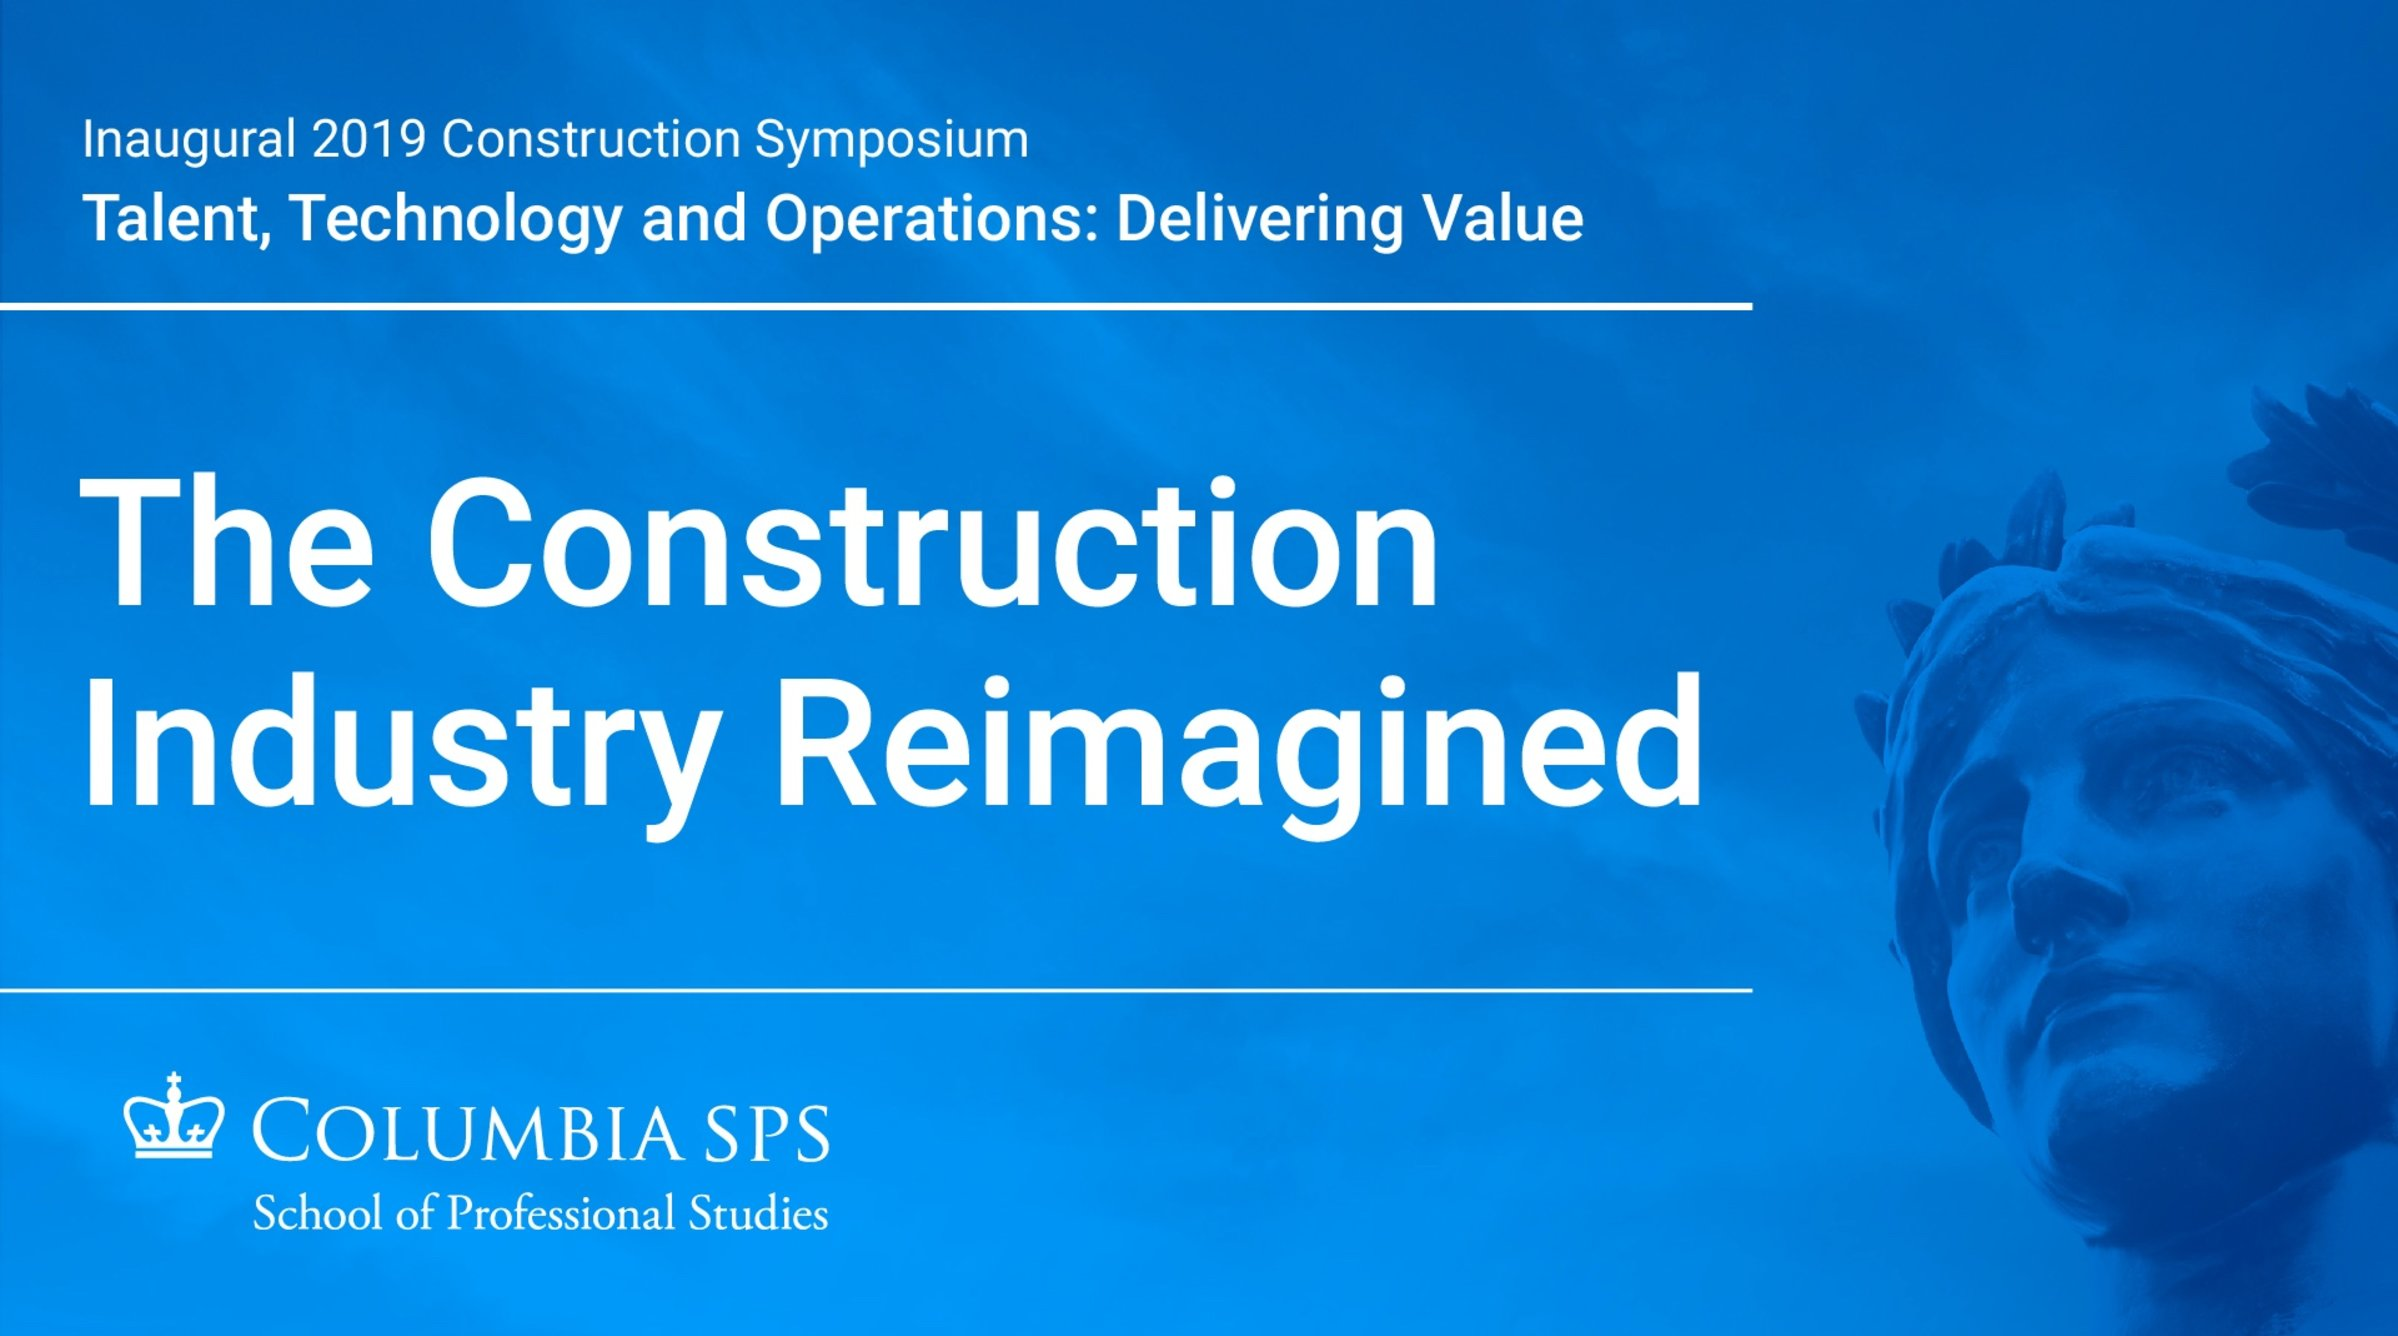 The Construction Industry Reimagined cover image